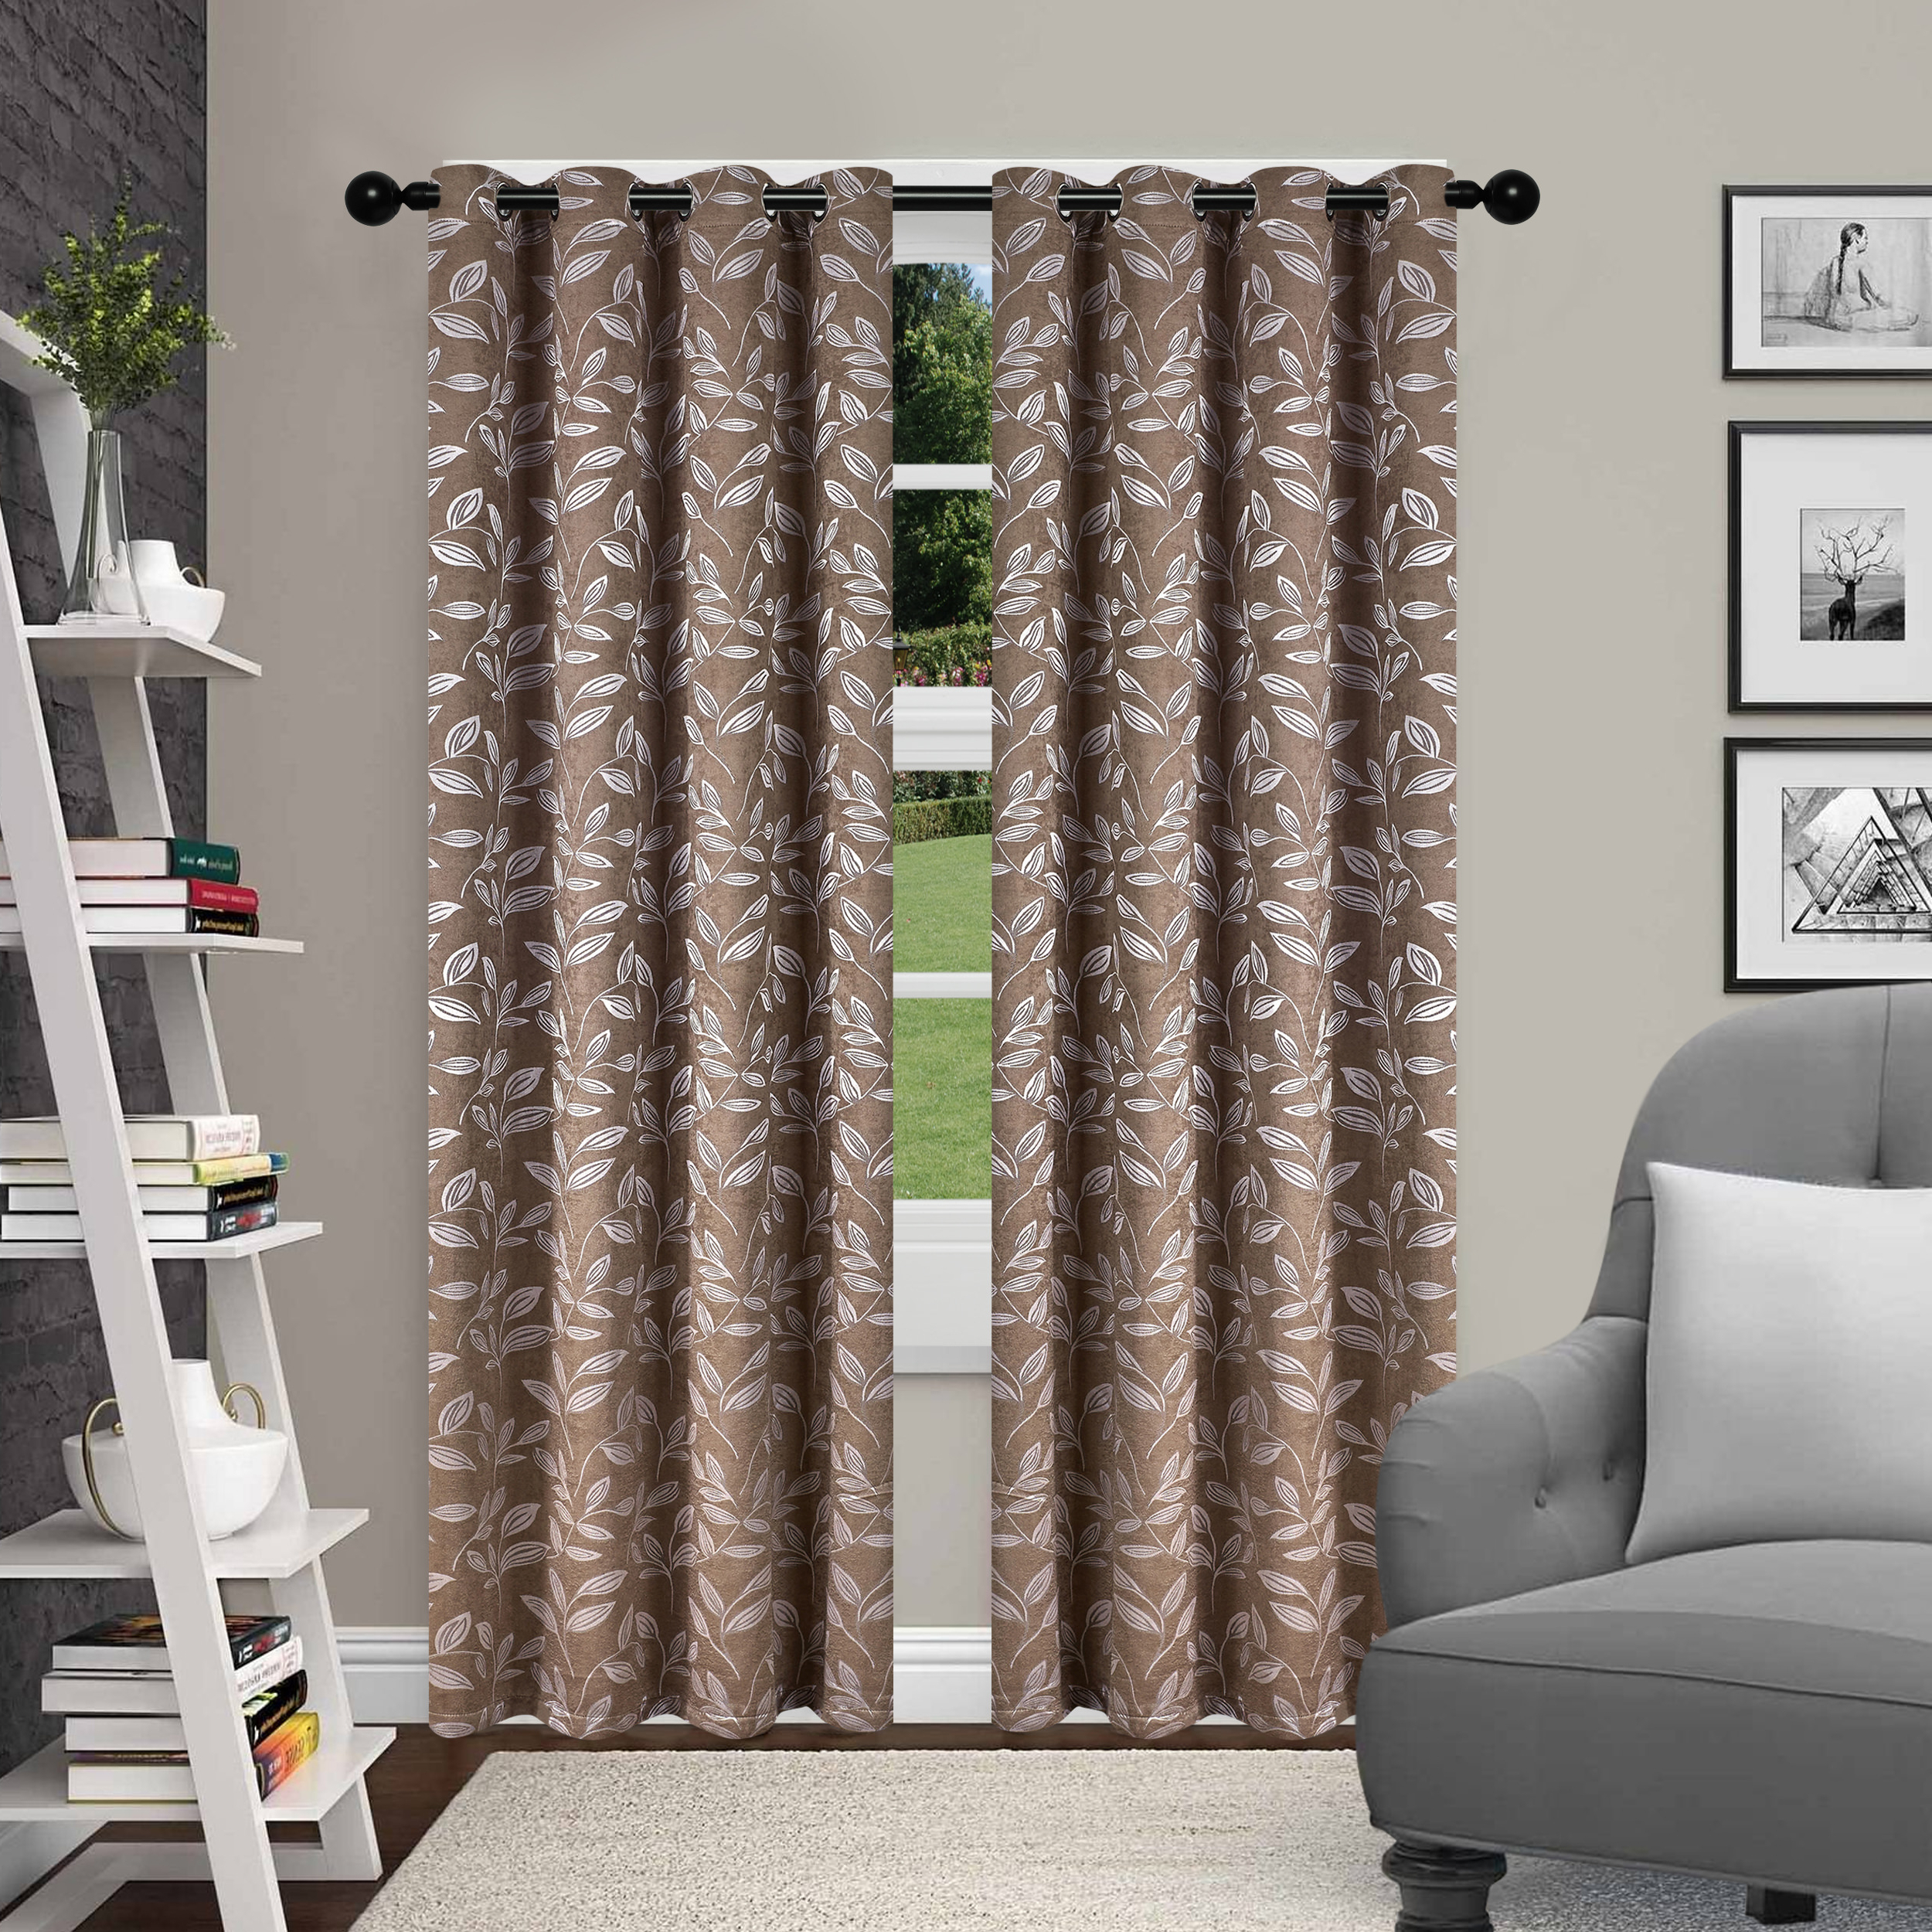 Most Recently Released Superior Leaves Insulated Thermal Blackout Grommet Curtain Panel Pairs Pertaining To Superior Leaves Textured Blackout Curtain Set Of 2 With (View 7 of 20)